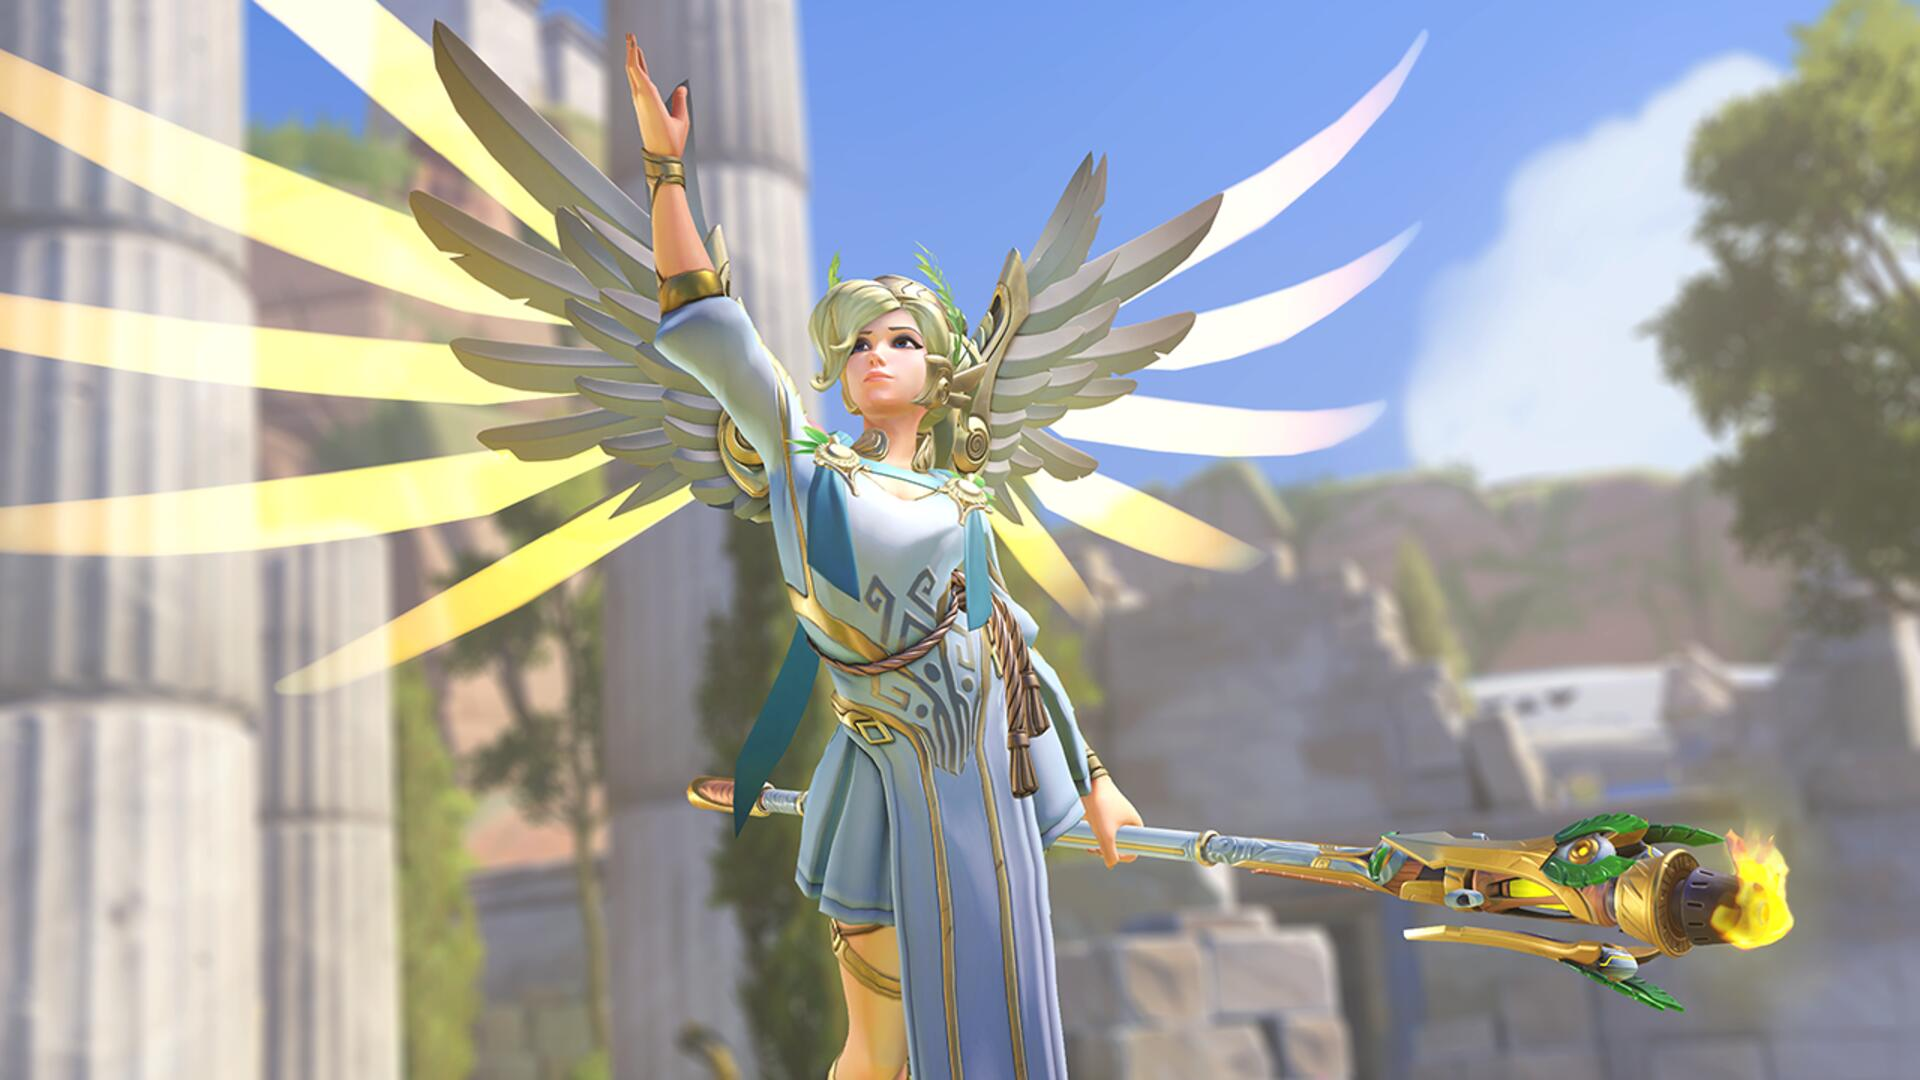 Summer Games Overwatch 2020.Overwatch Summer Games 2018 Update Event Has Ended All